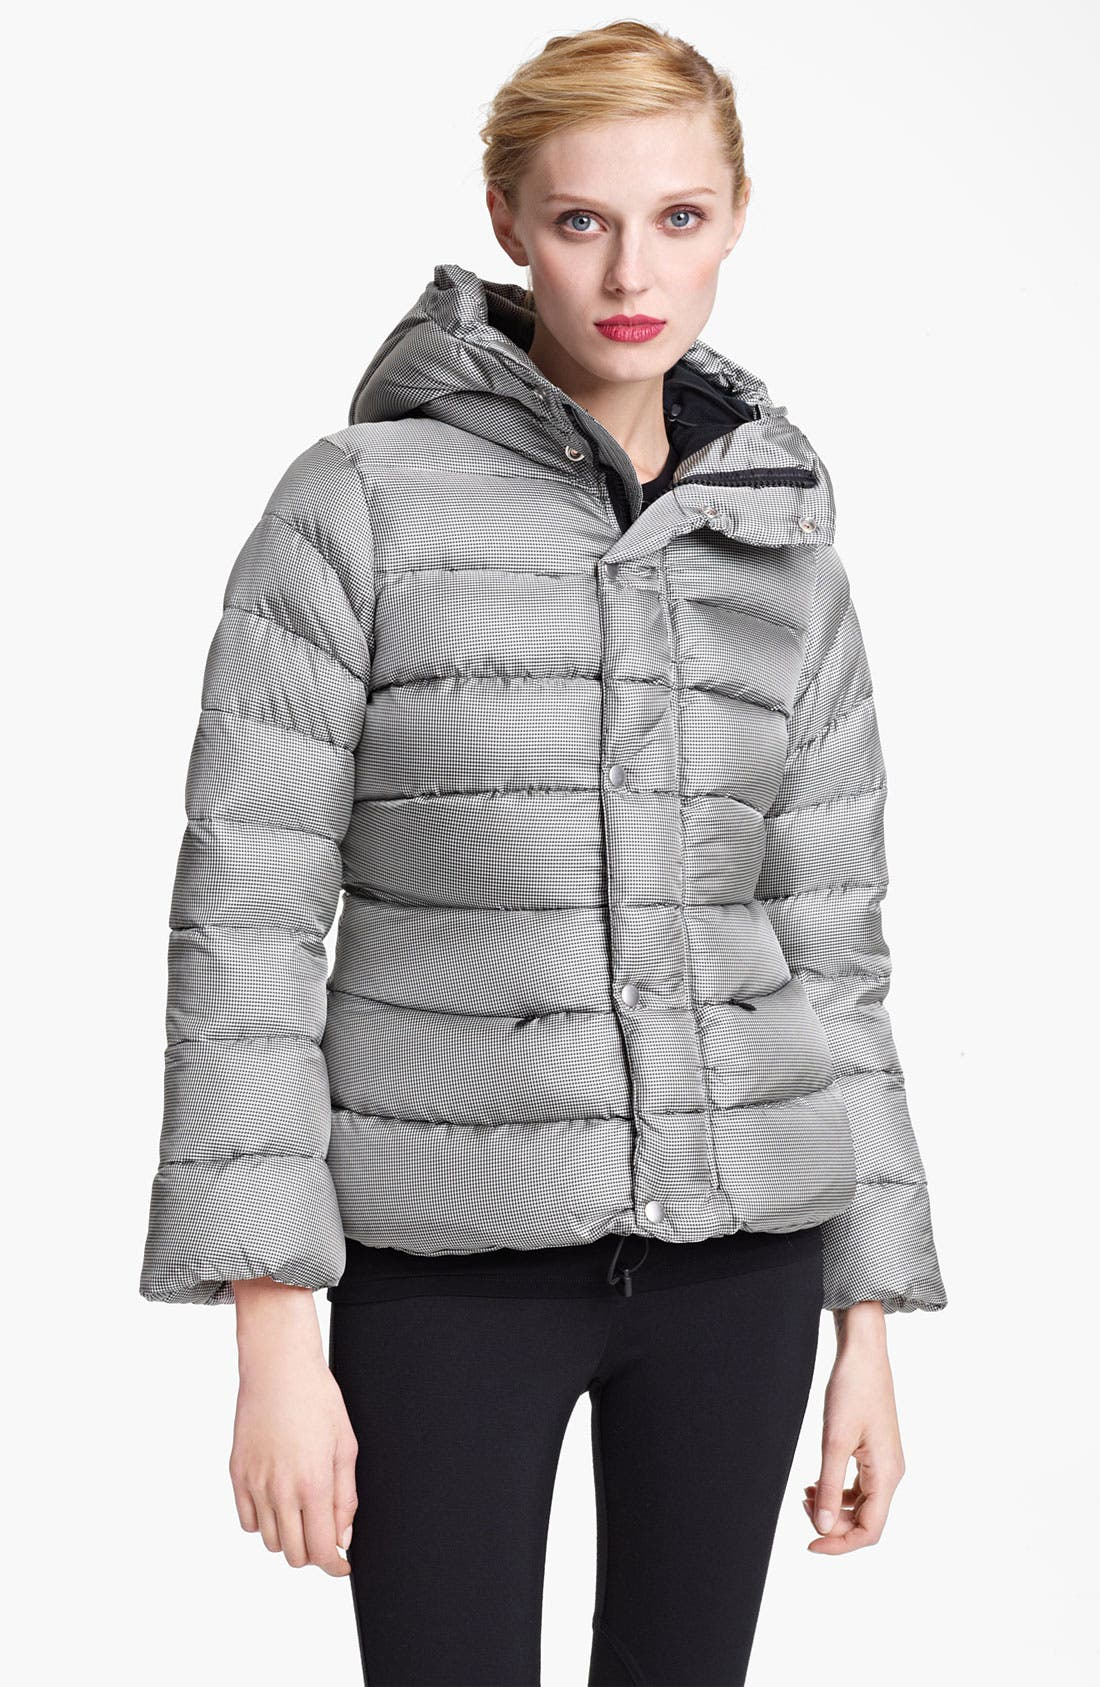 Houndstooth Puffer Jacket,                             Main thumbnail 1, color,                             005